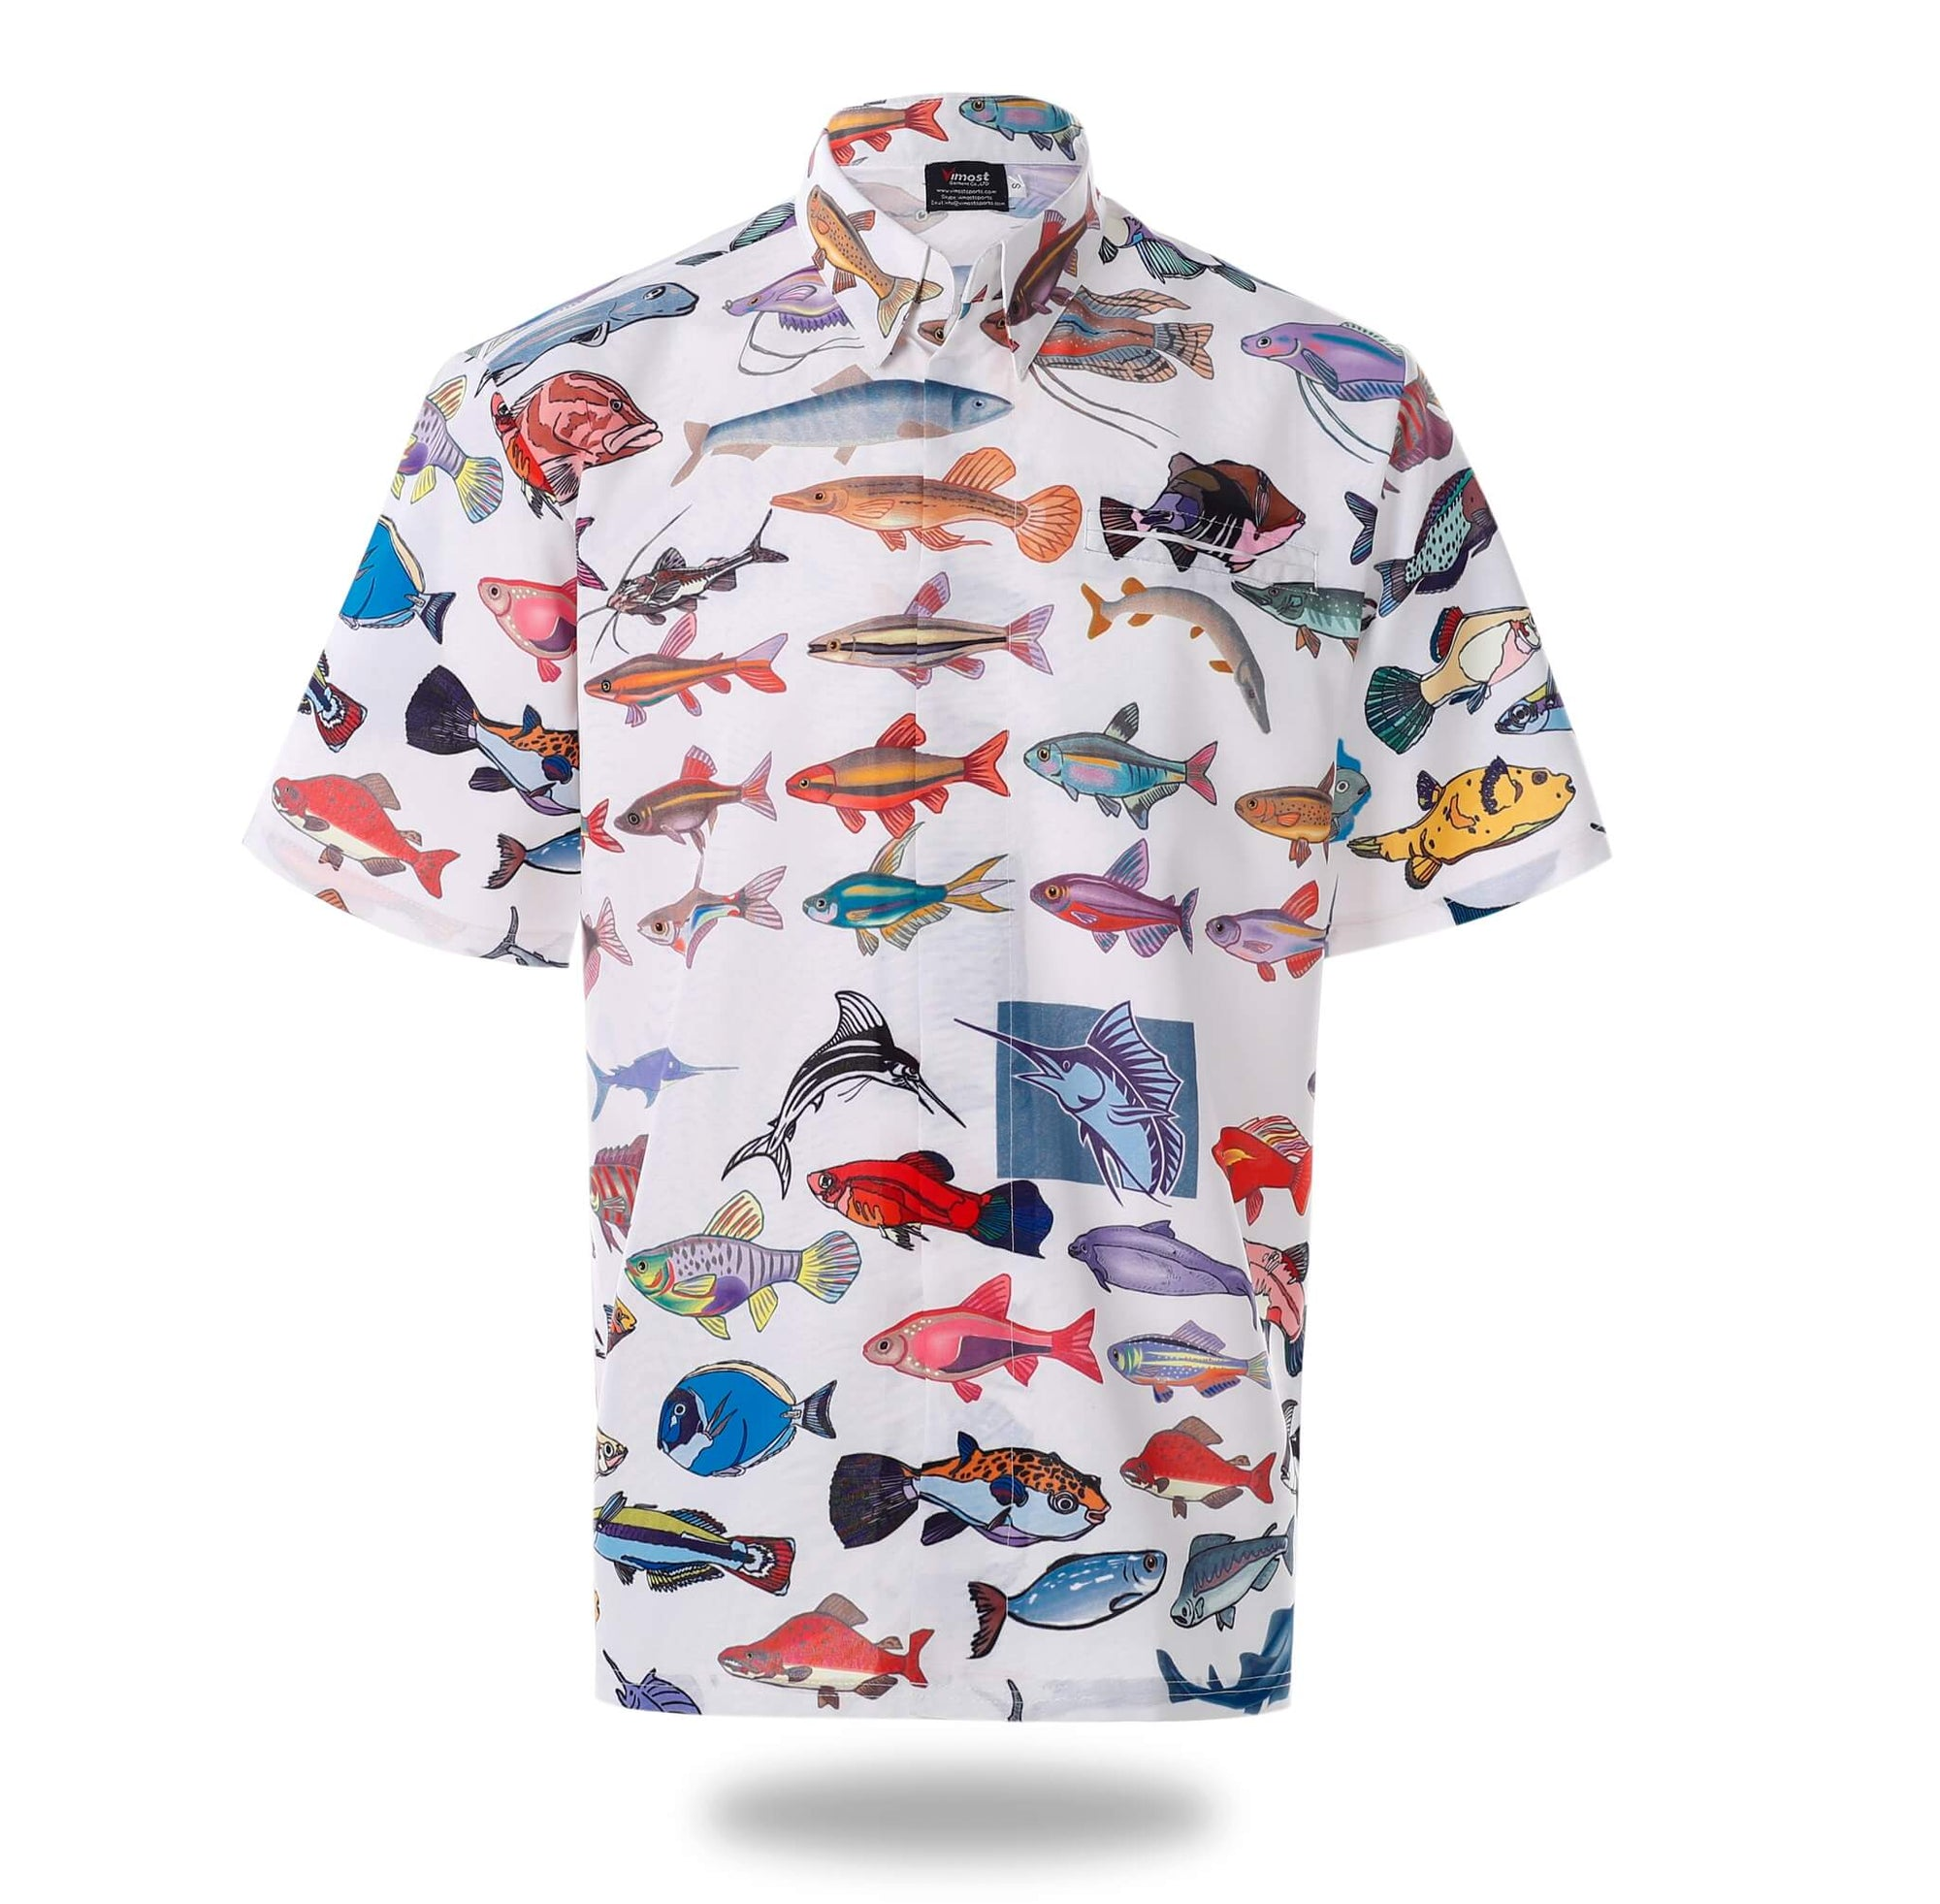 Fishes Design Top Quality Fishing Shirts-Vimost Sports